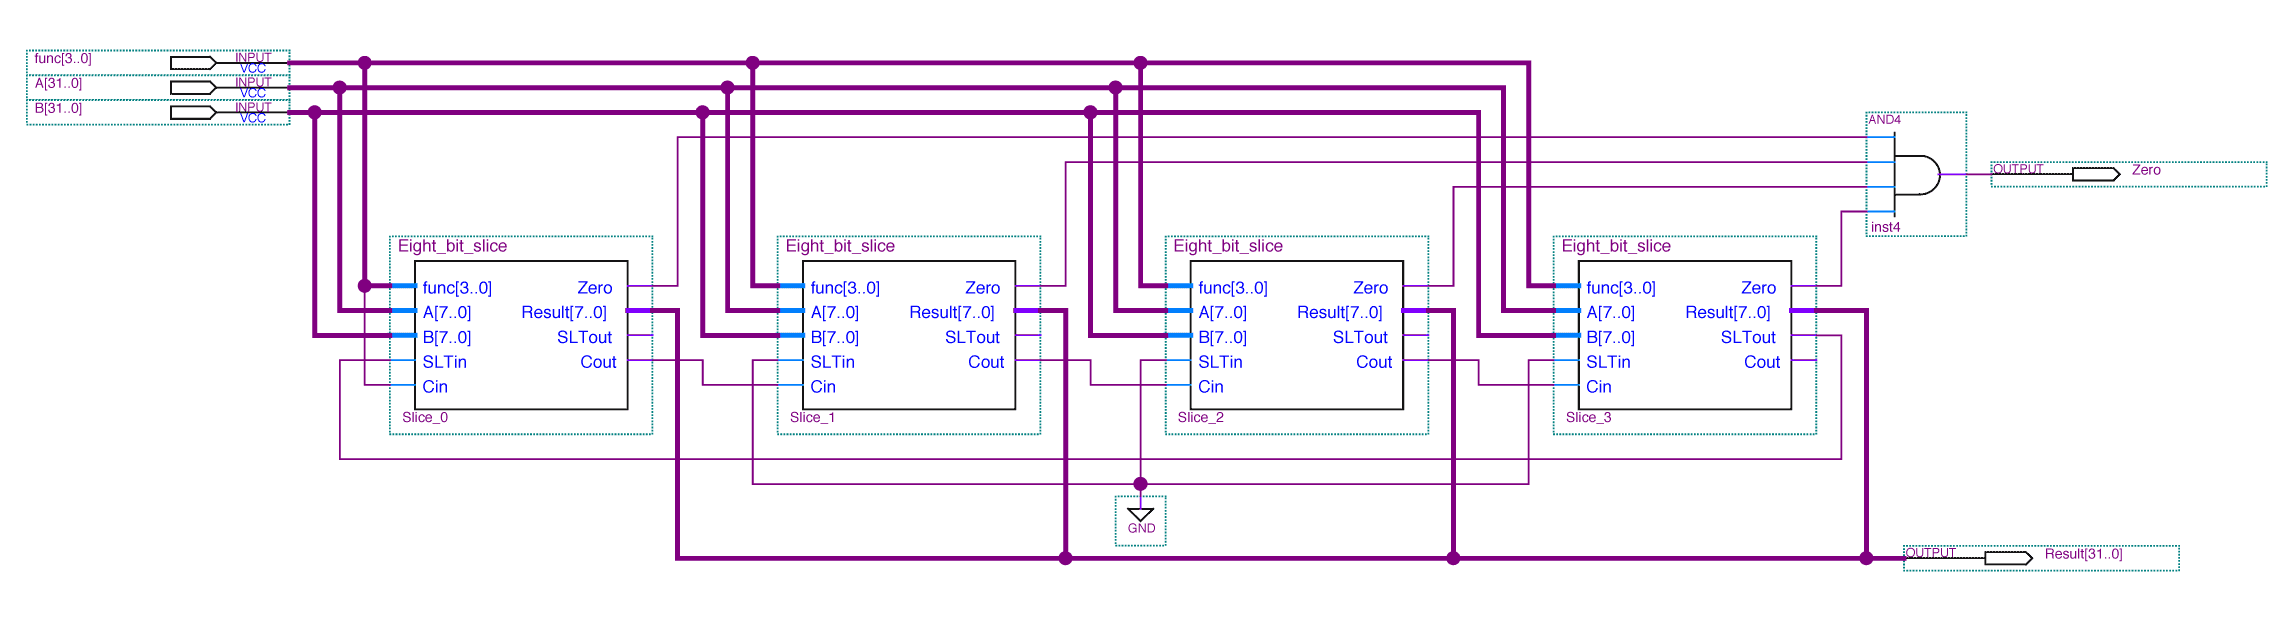 Circuit Diagram Of 8 Bit Alu Wiring Library Sketch A Block Showing How Full Adders Can Cheggcom Mips Constructed From Four Slices